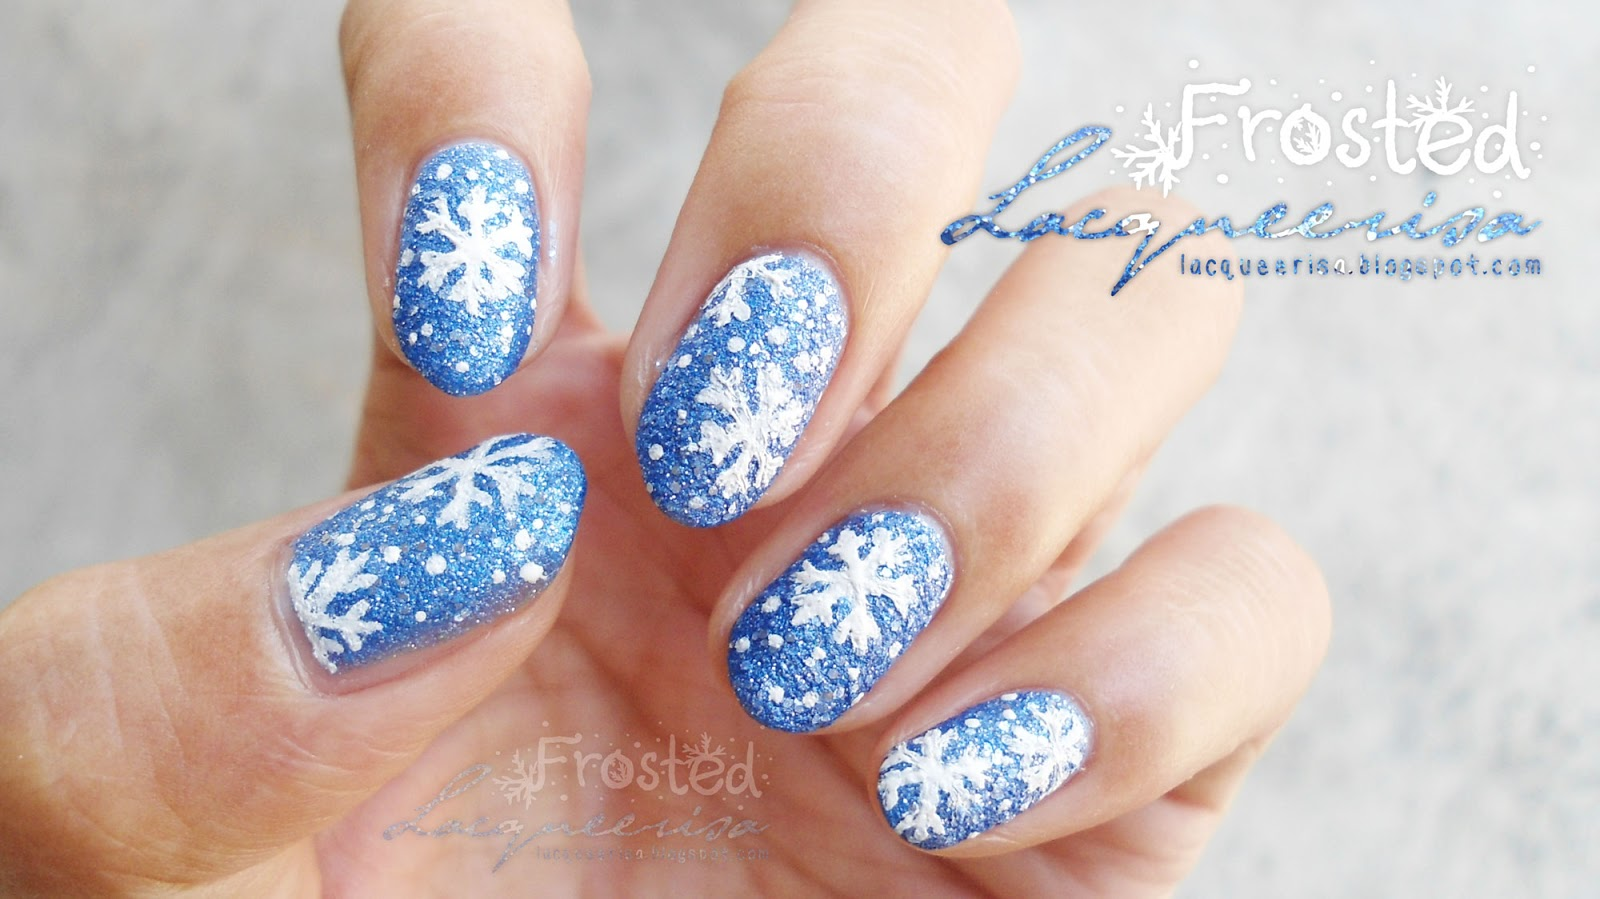 Lacqueerisa: Frosted